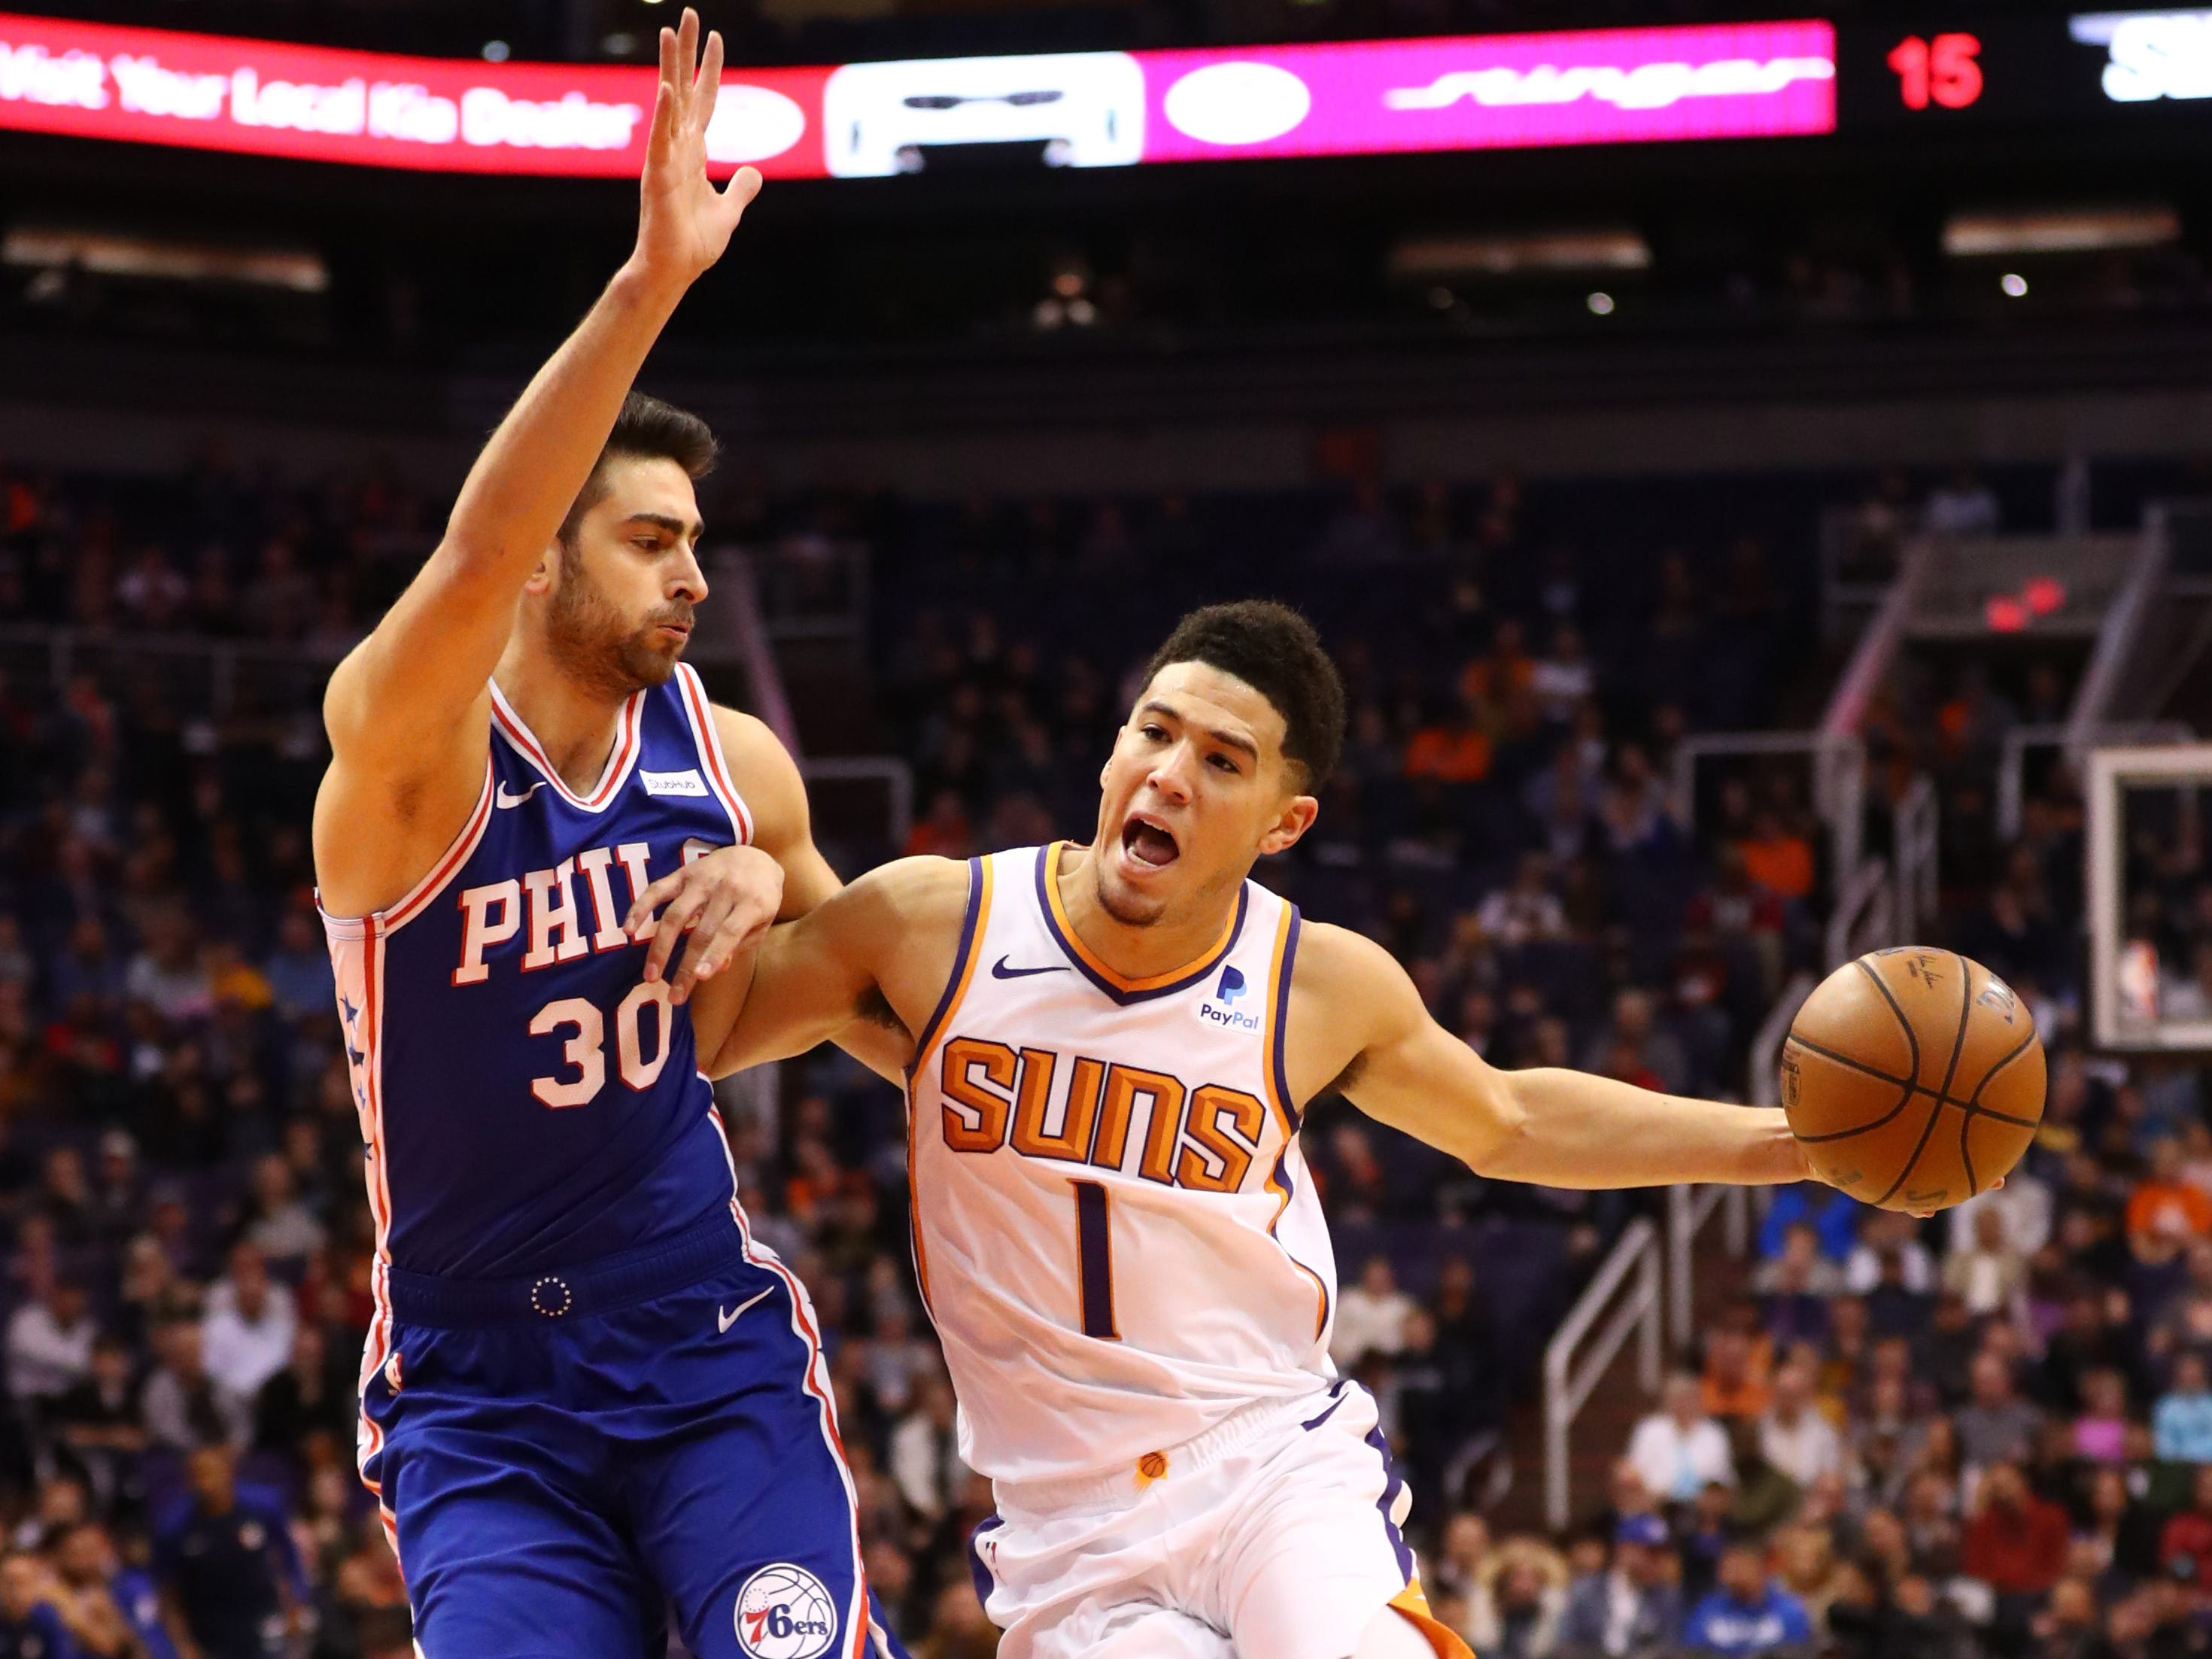 Jan 2, 2019; Phoenix, AZ, USA; Phoenix Suns guard Devin Booker (1) against Philadelphia 76ers guard Furkan Korkmaz (30) in the first half at Talking Stick Resort Arena. Mandatory Credit: Mark J. Rebilas-USA TODAY Sports